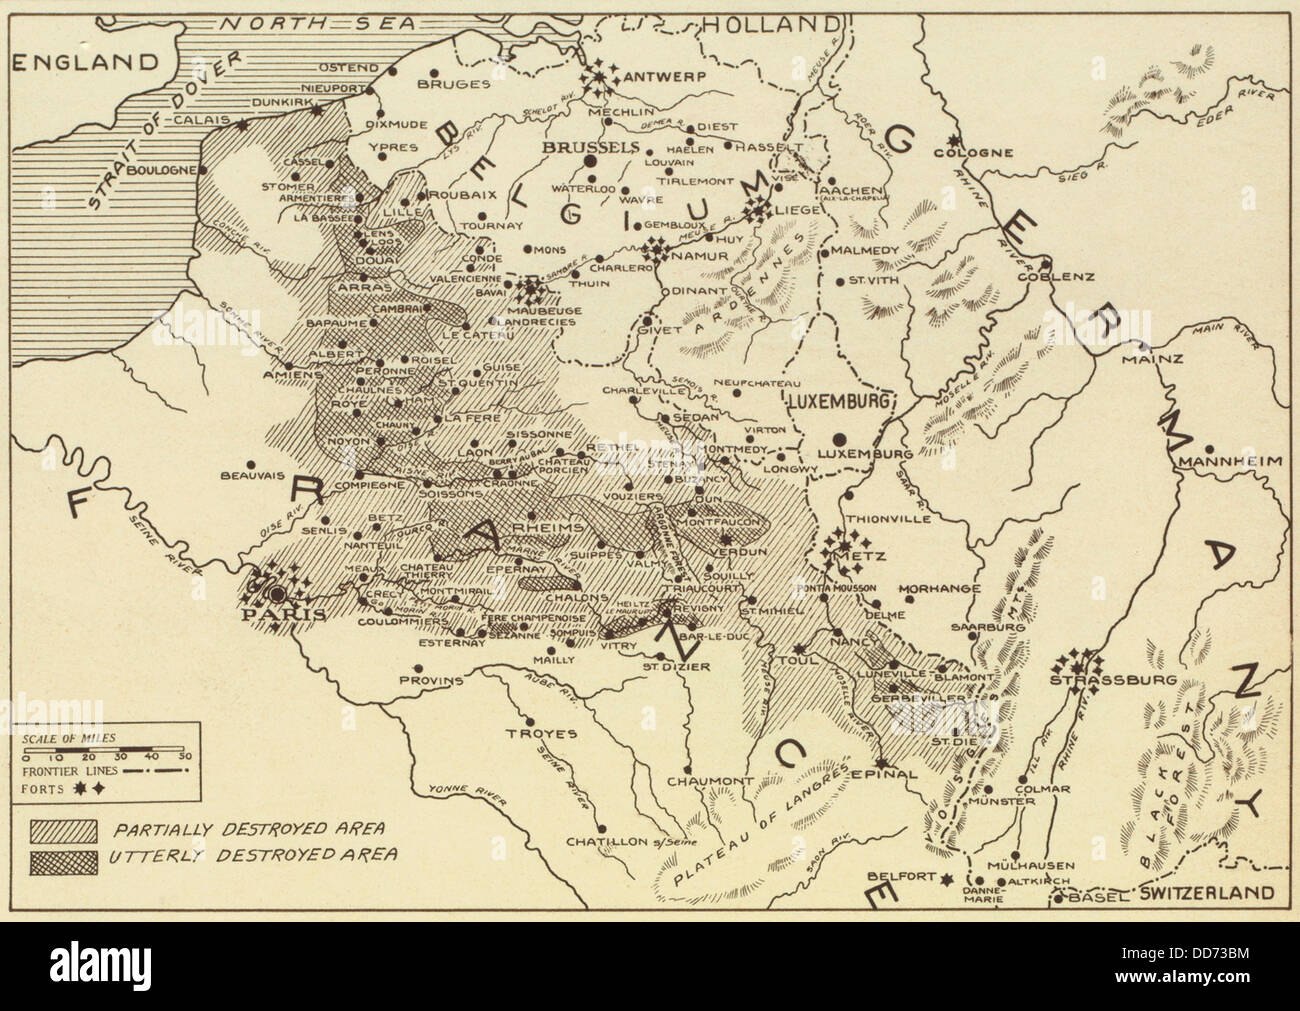 Post World War 1 Map Of The Ruined Regions Of France In 1919 Bsloc